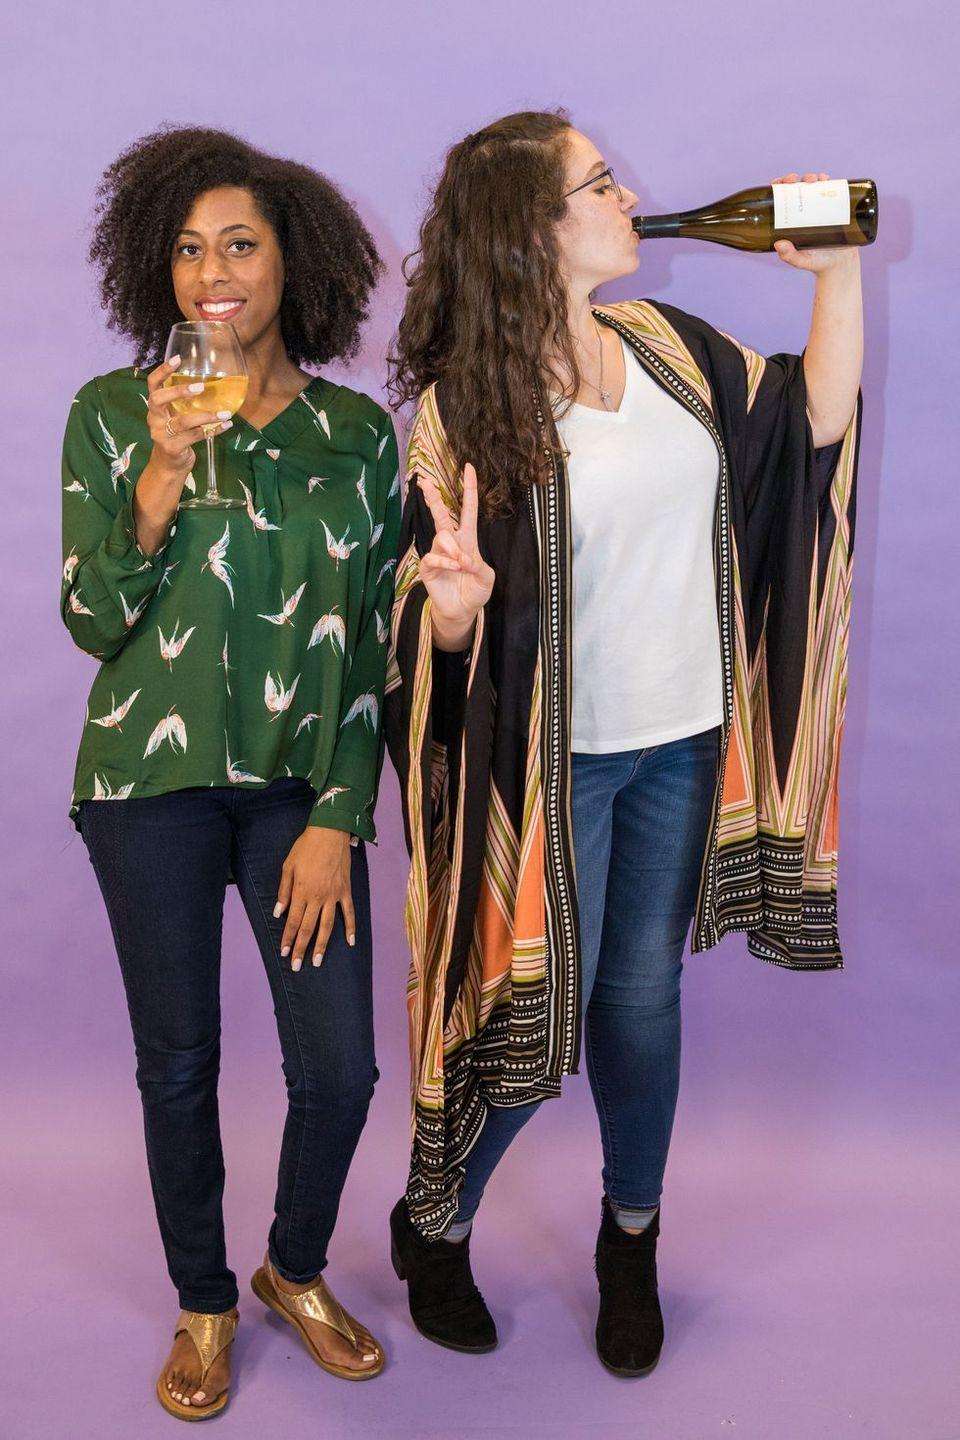 """<p>Grab the wine and prepare for the seventh <em>and</em> final season of <em>Grace & Frankie</em> with this hilarious costume. Once you figure out who is who, shop your closets (before making a pit stop at the liquor store) to DIY these Netflix-worthy looks. </p><p><strong>RELATED:</strong> <a href=""""https://www.goodhousekeeping.com/holidays/halloween-ideas/g28102891/badass-halloween-costumes-women/"""" rel=""""nofollow noopener"""" target=""""_blank"""" data-ylk=""""slk:30 Badass Halloween Costume Ideas for Strong Women"""" class=""""link rapid-noclick-resp"""">30 Badass Halloween Costume Ideas for Strong Women</a></p>"""